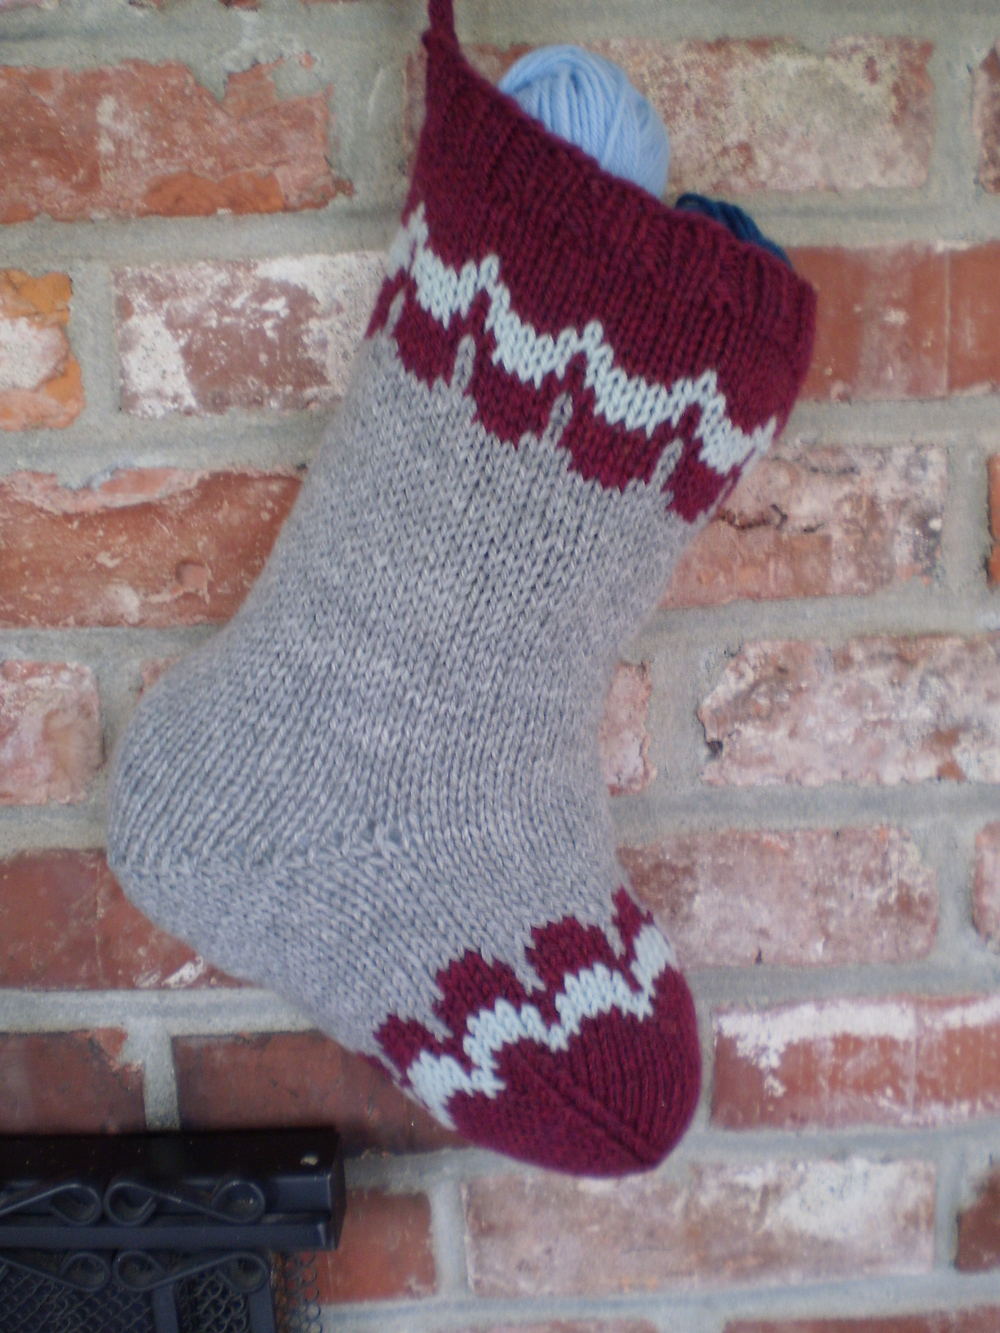 Knitting Loom Christmas Stocking Pattern : Scalloped Christmas Stocking Pattern AllFreeKnitting.com